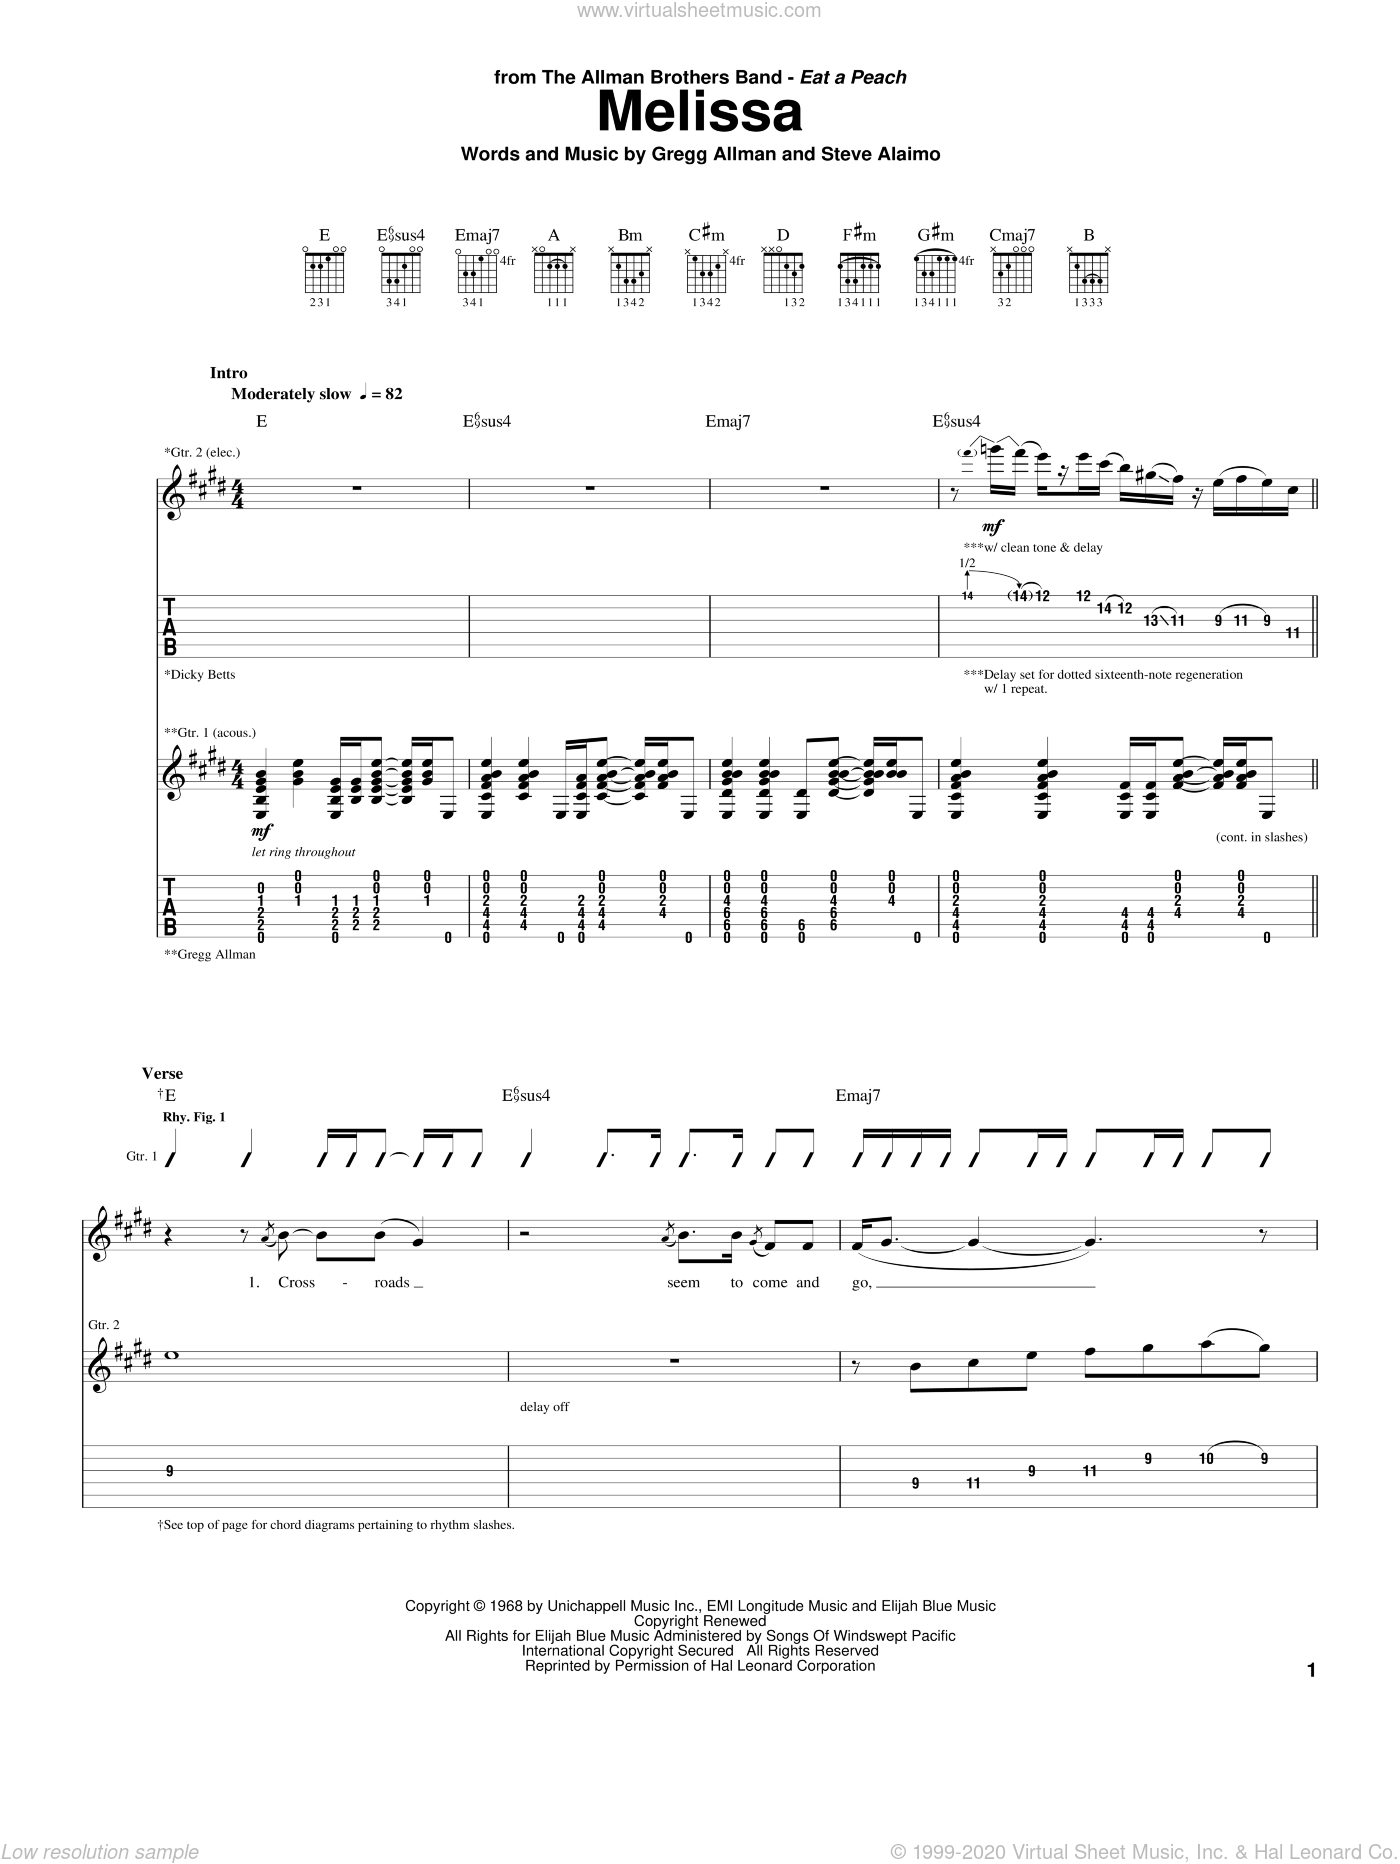 Melissa sheet music for guitar (tablature) by Allman Brothers Band, The Allman Brothers Band, Gregg Allman and Steve Alaimo, intermediate skill level